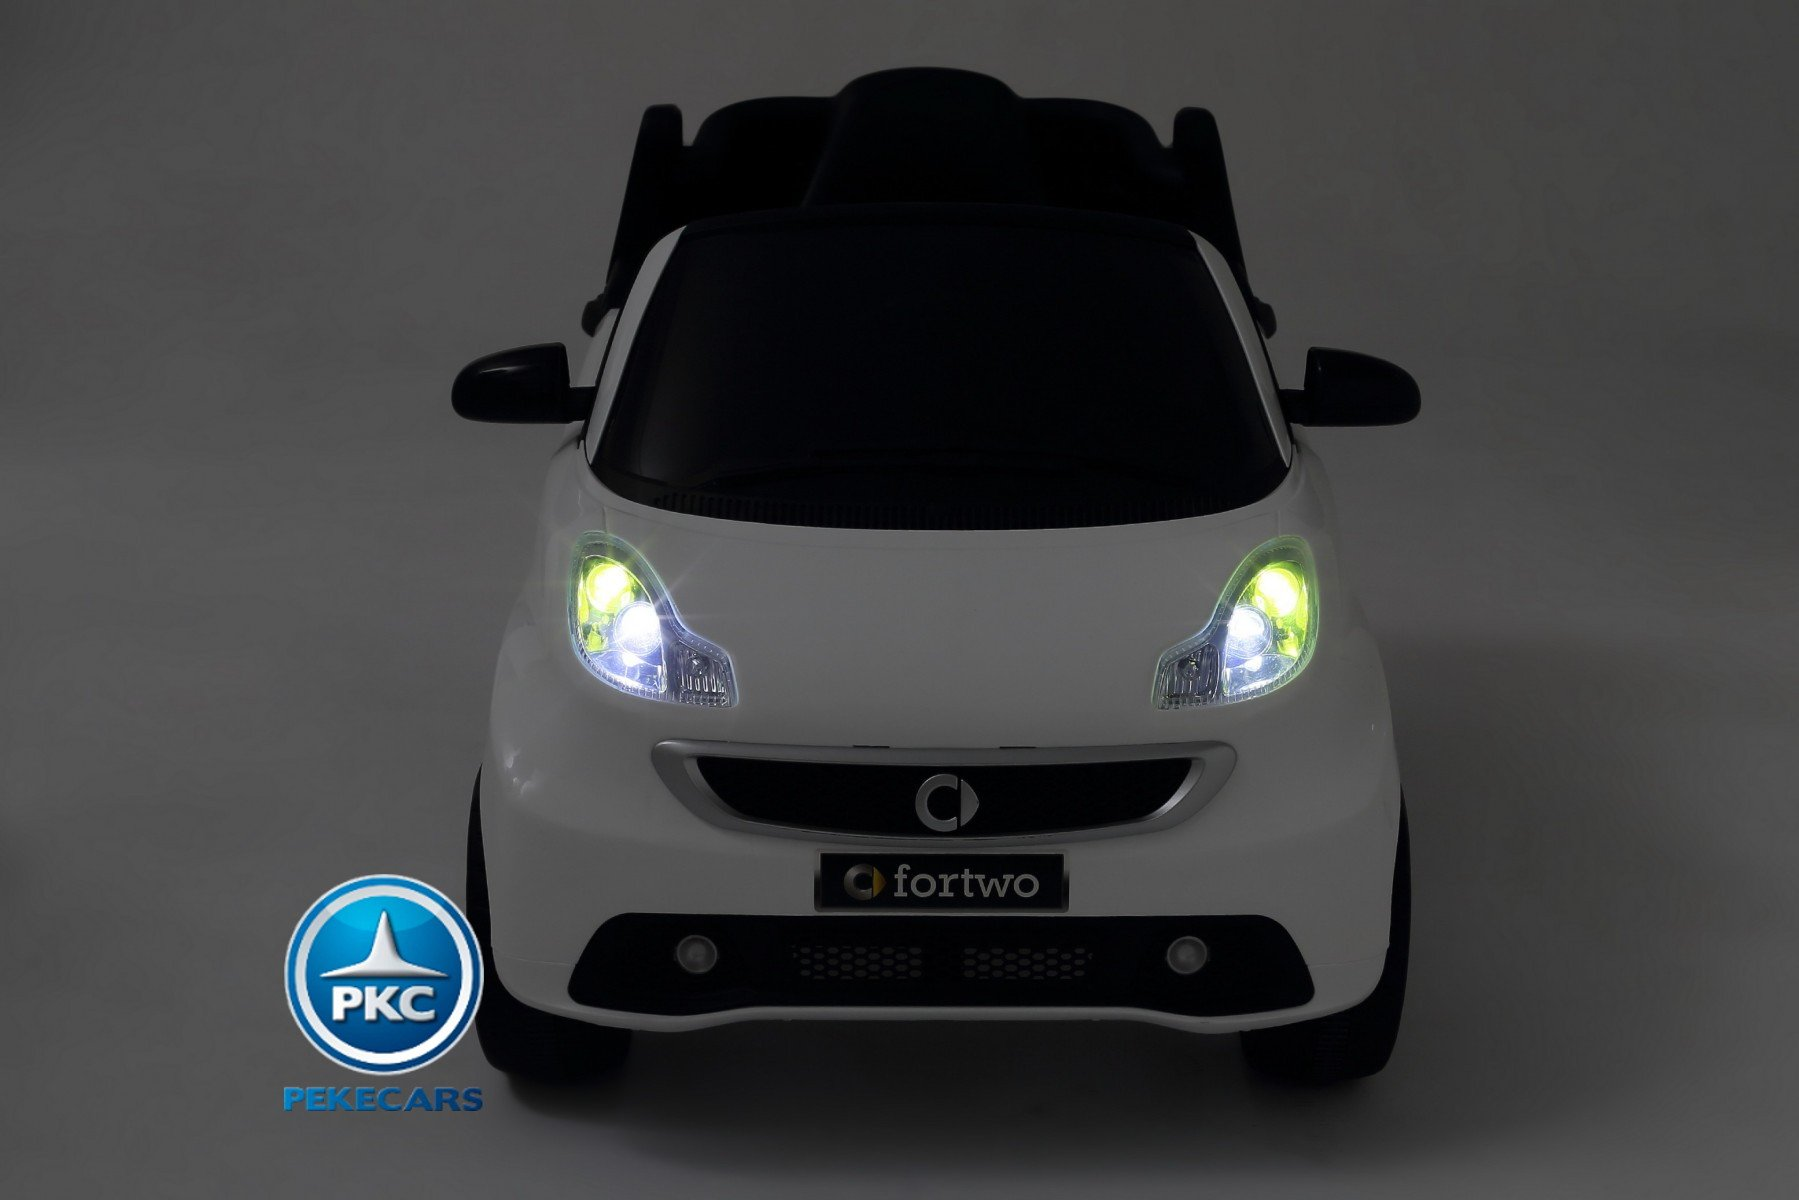 Smart ForTwo vista frontal 12V 2.4G RC Negro